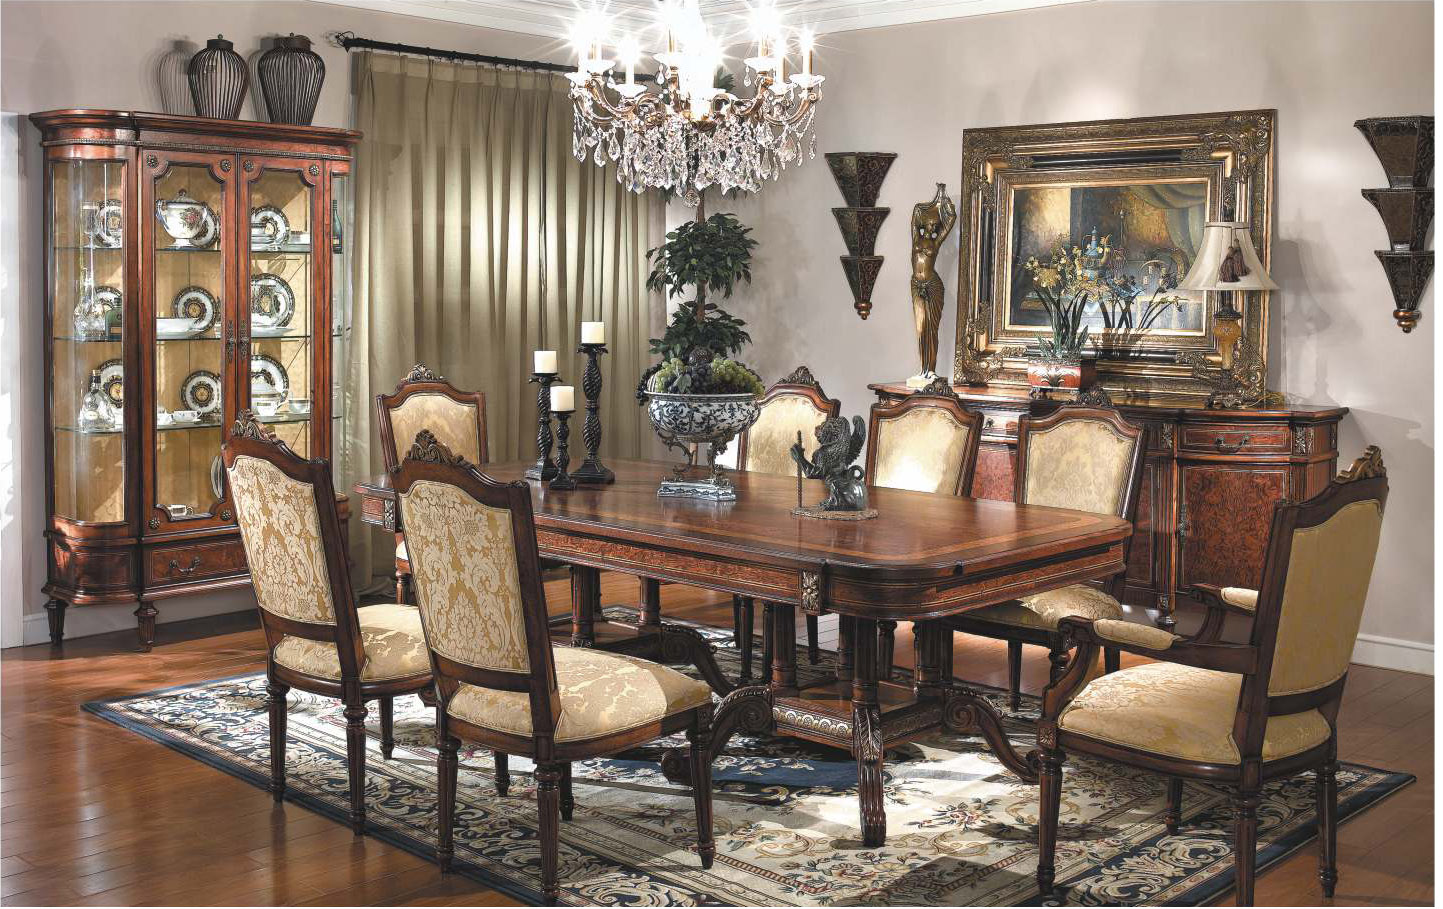 11 Piece French Ornate Dining Table And Chair Set EBay